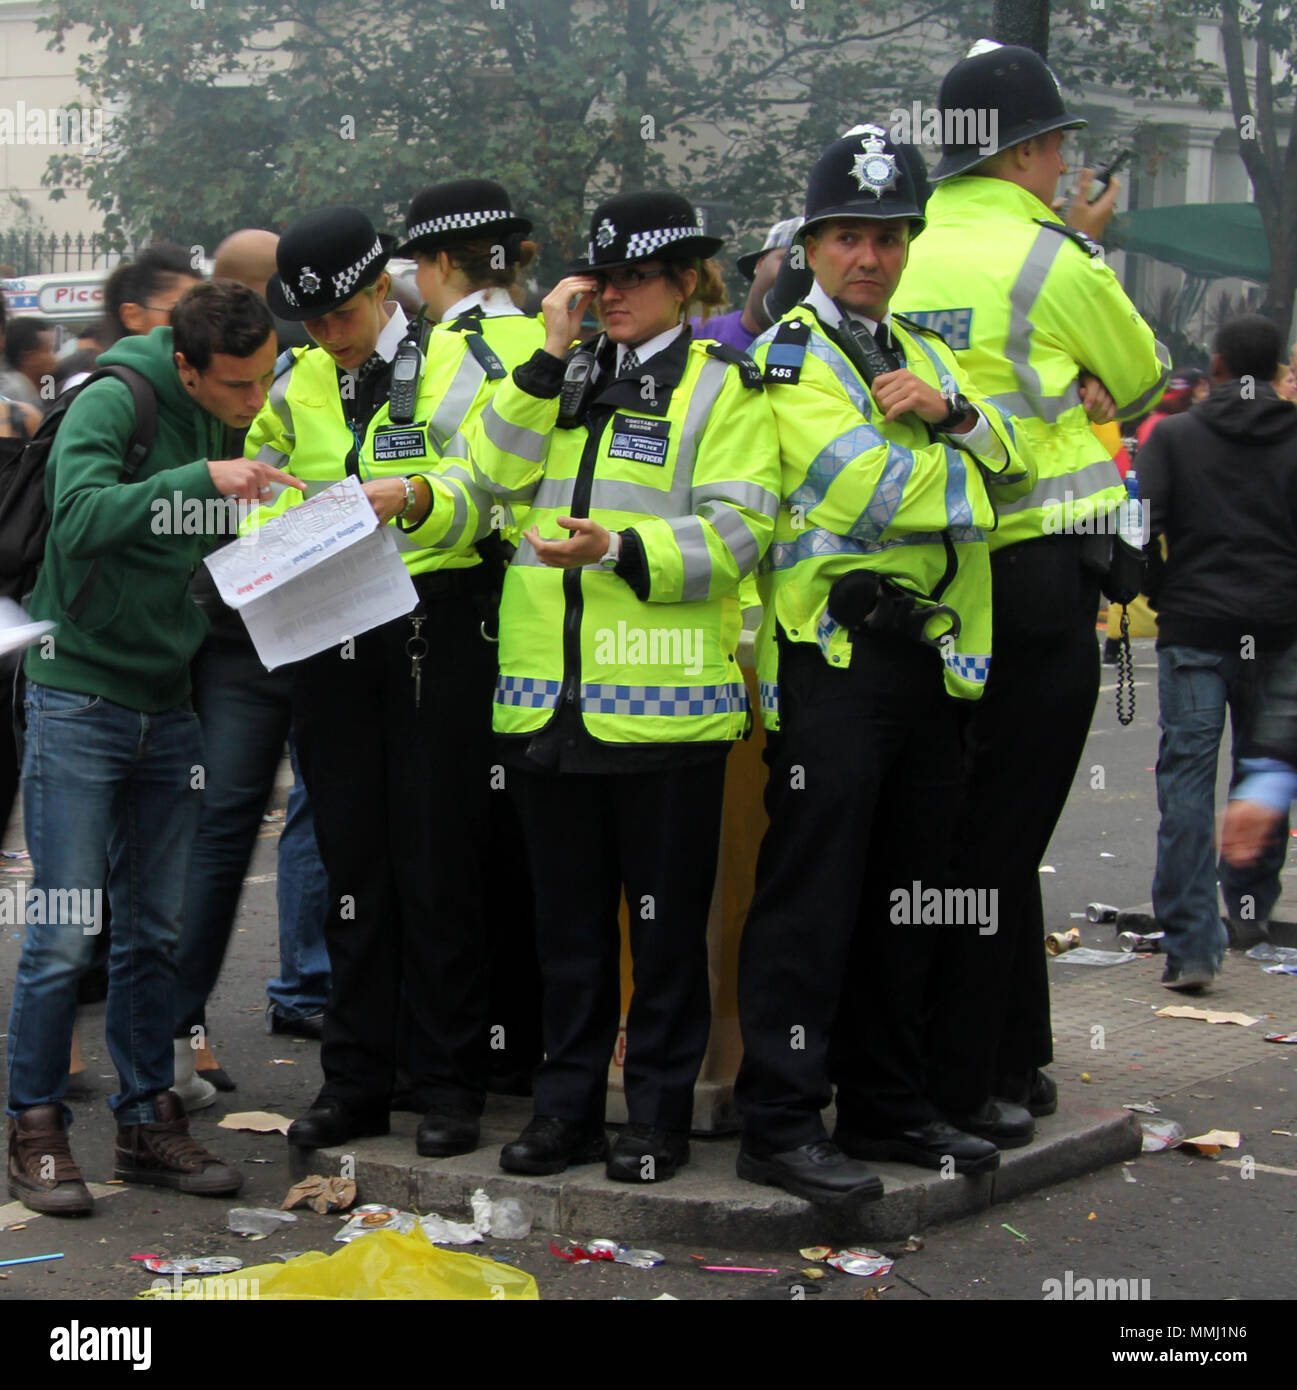 A bunch of coppers standing on a traffic island during Notting hill carnival.  The police stick together in the mayhem - Stock Image